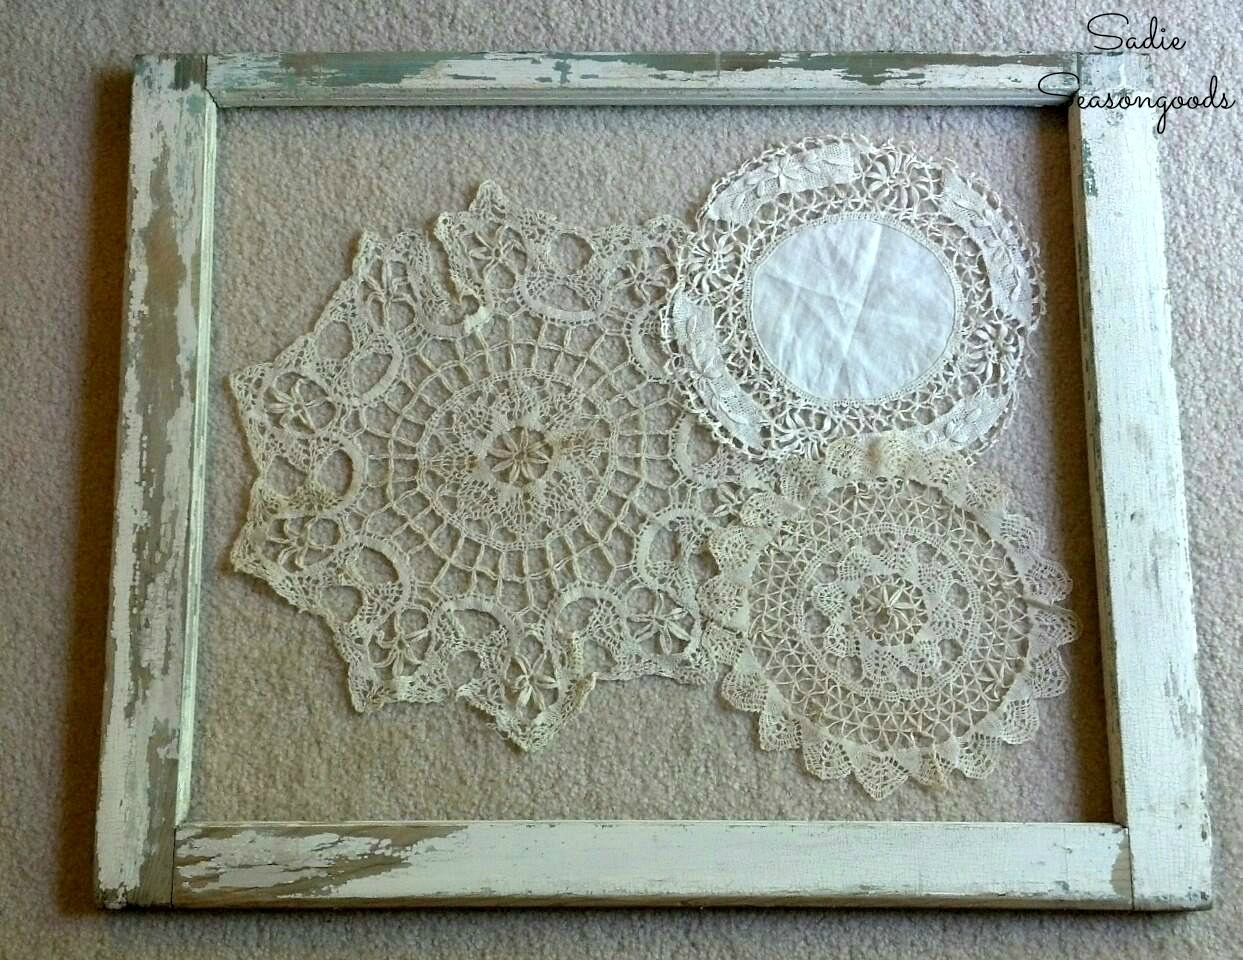 Window frame decor with vintage doilies as shabby chic wall art